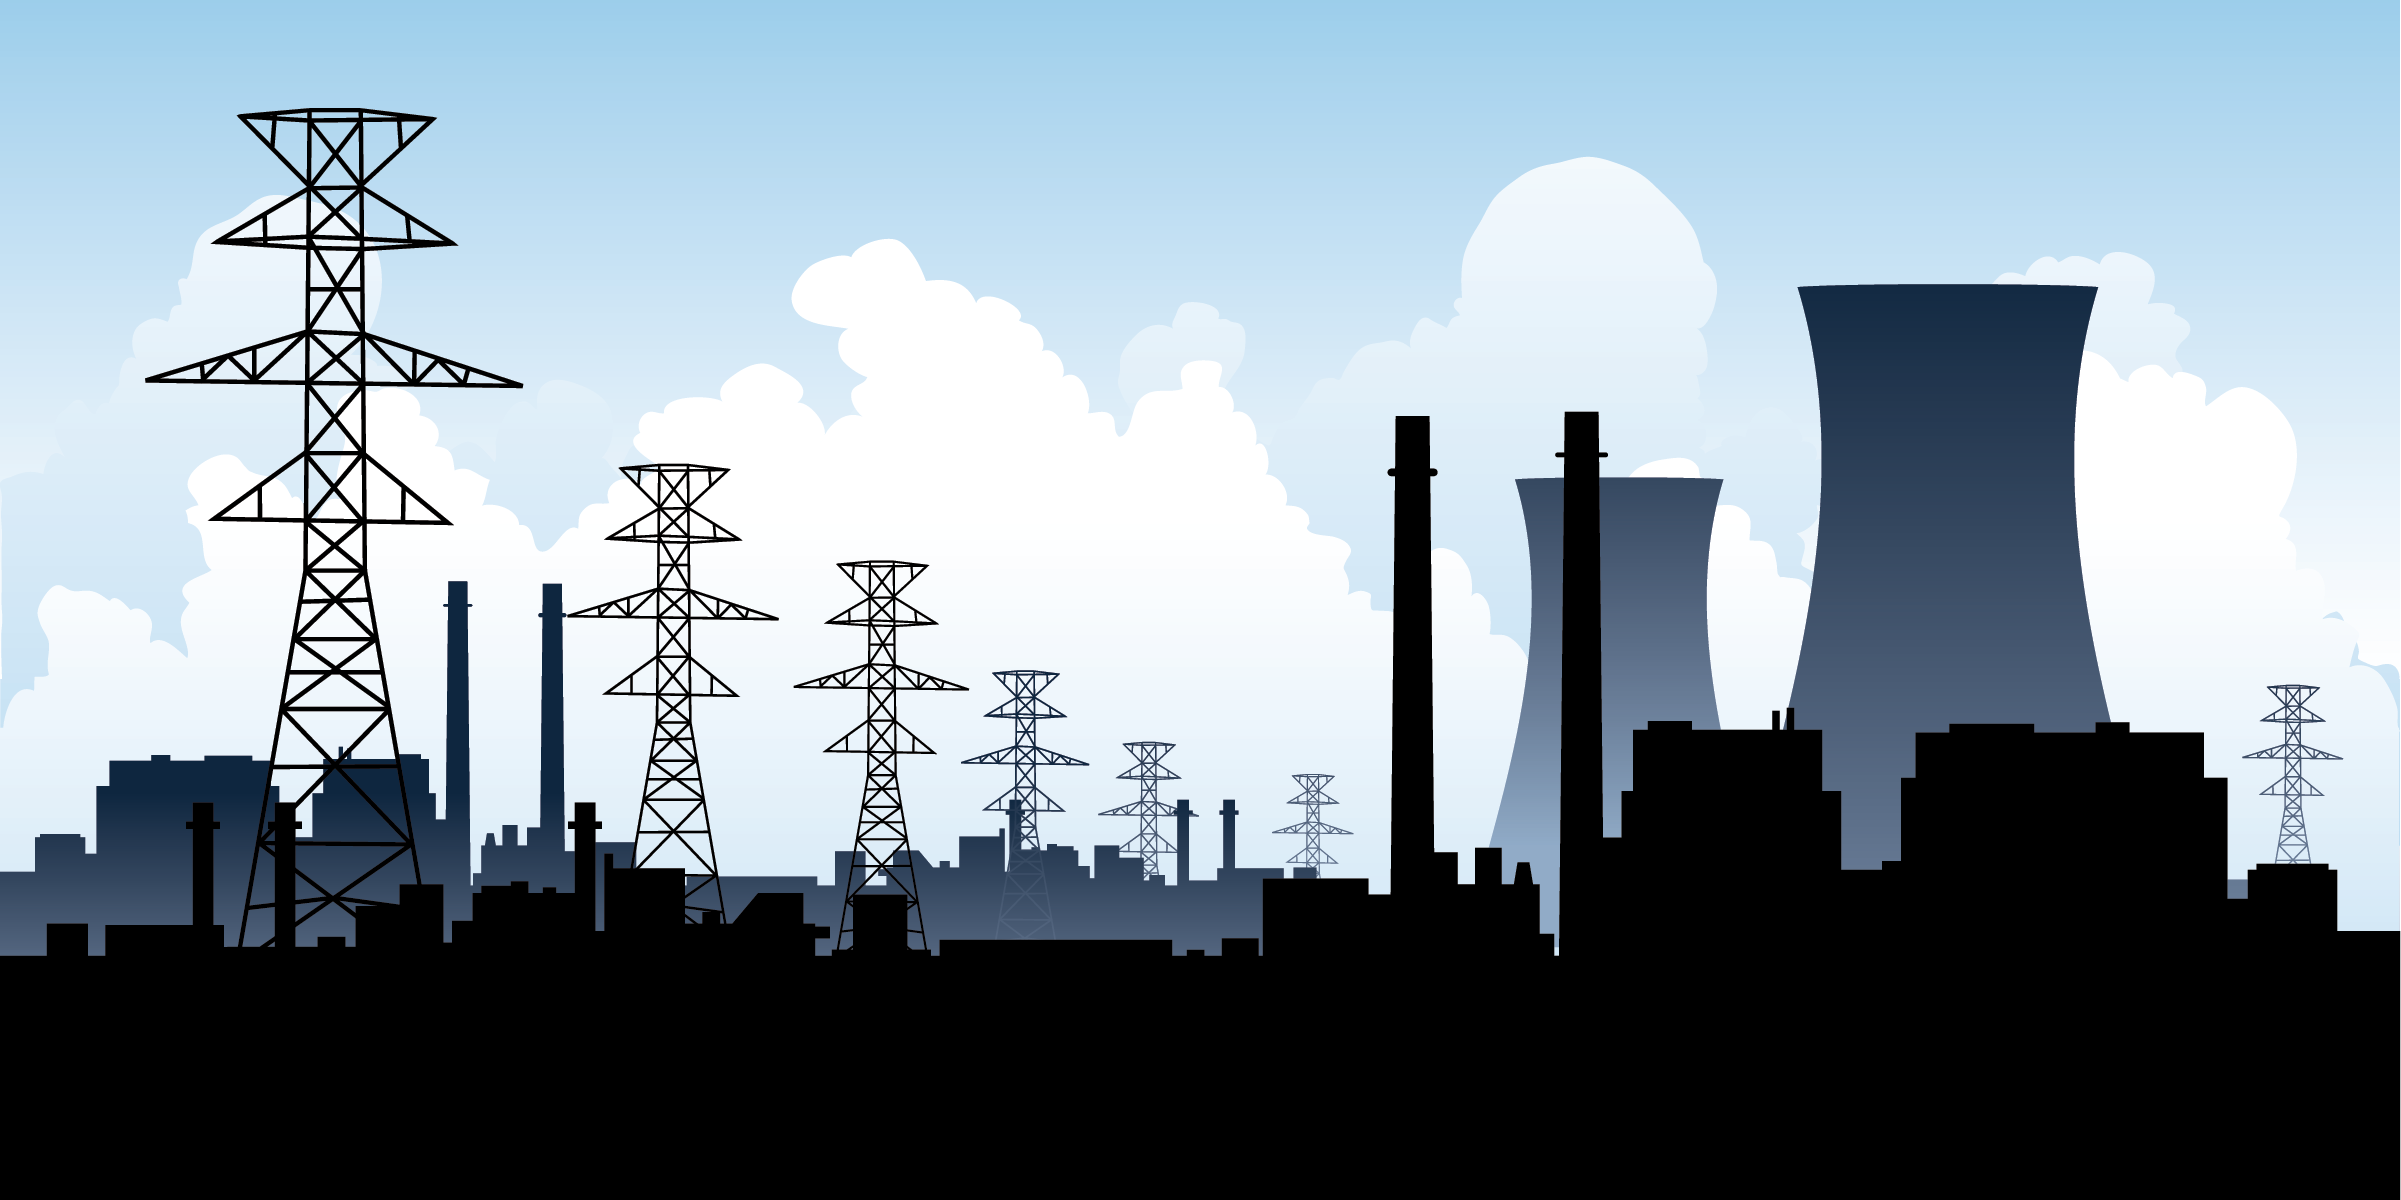 Nuclear energy reactors, power lines, and additional buildings along a blue sky